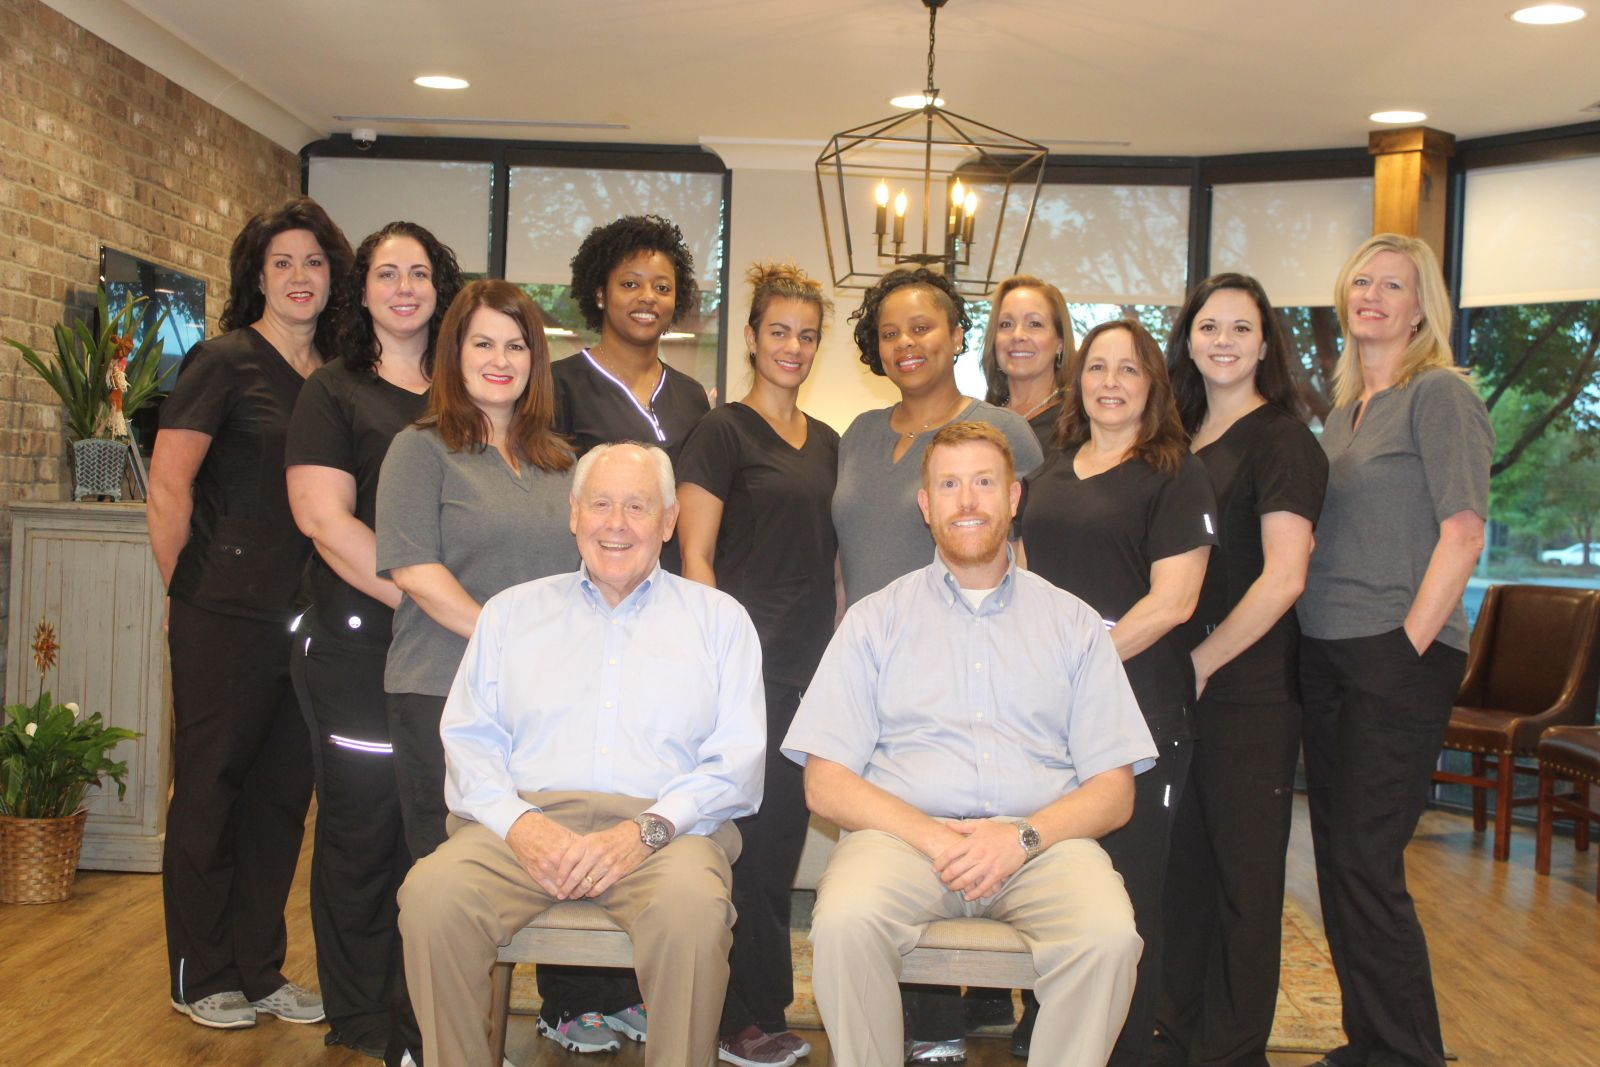 Dr. Tully and his dental team